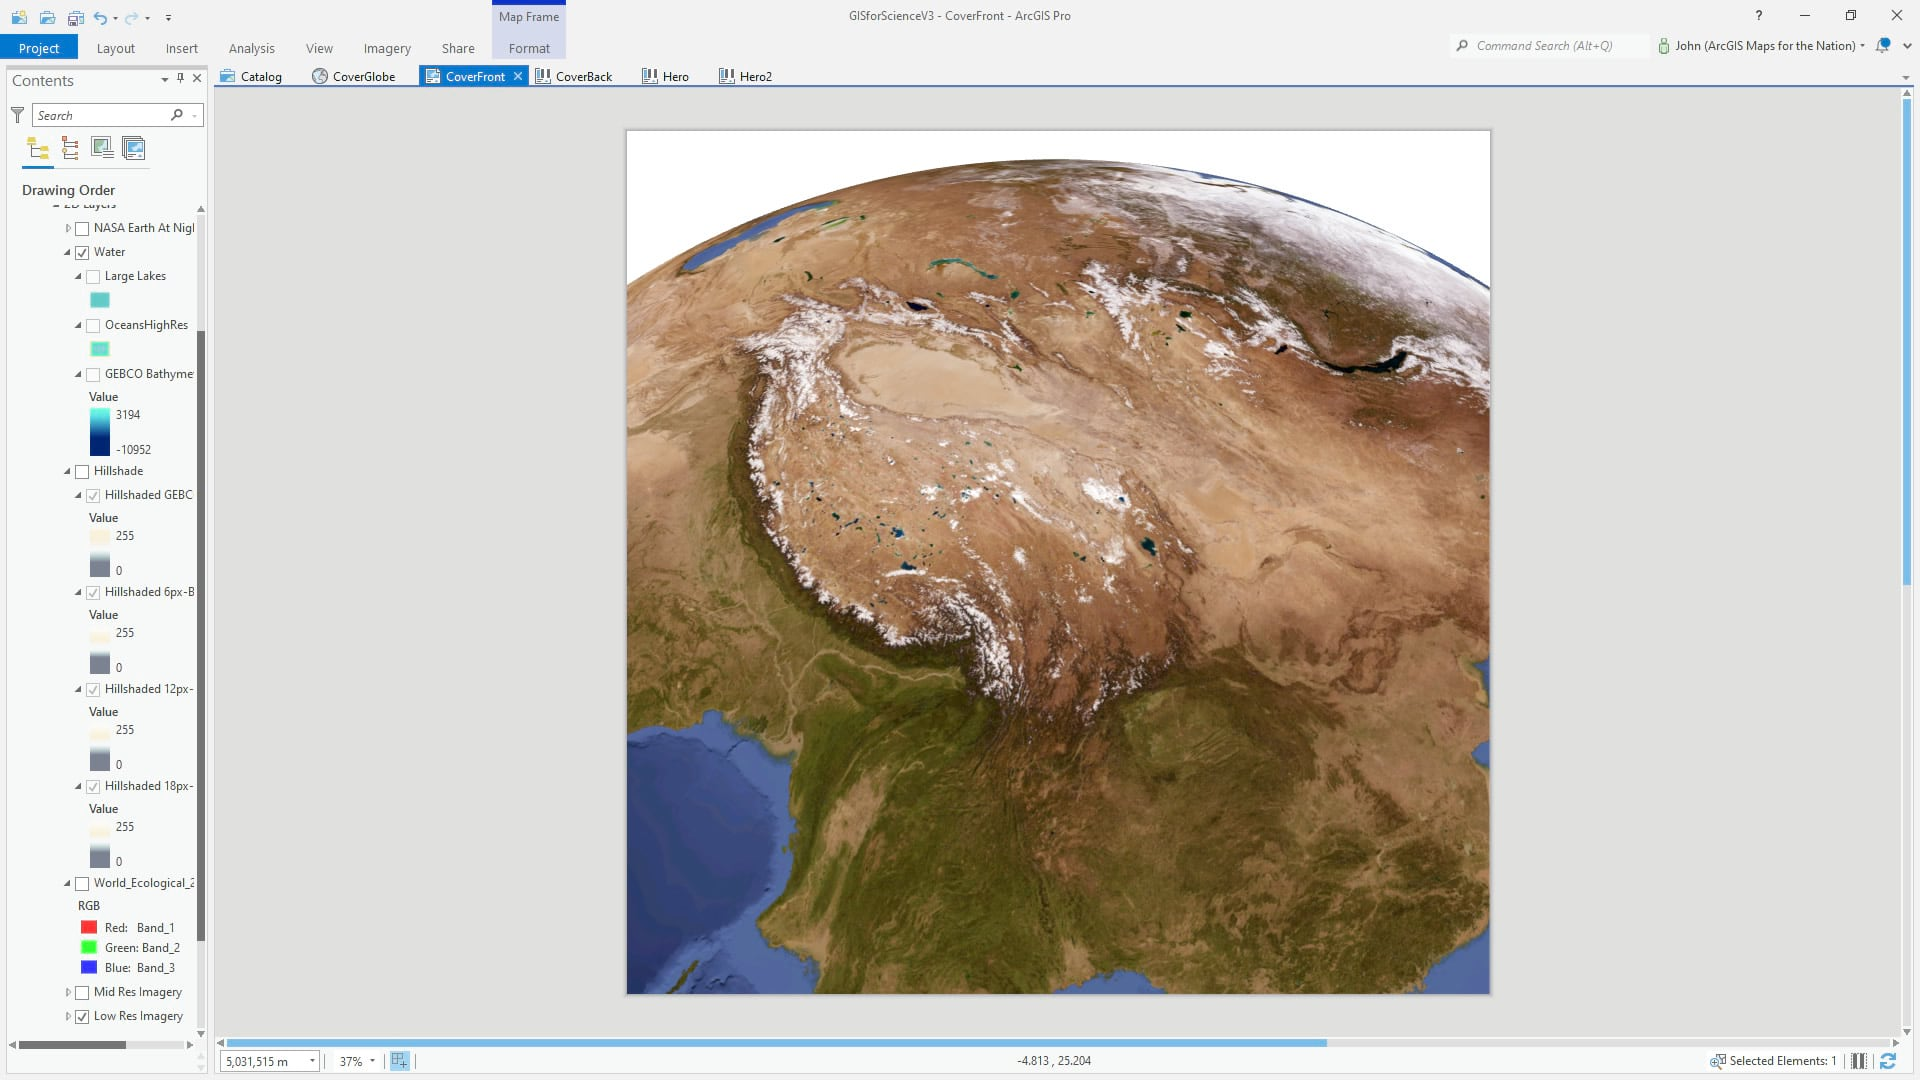 ArcGIS Pro 3D global scene with imagery.